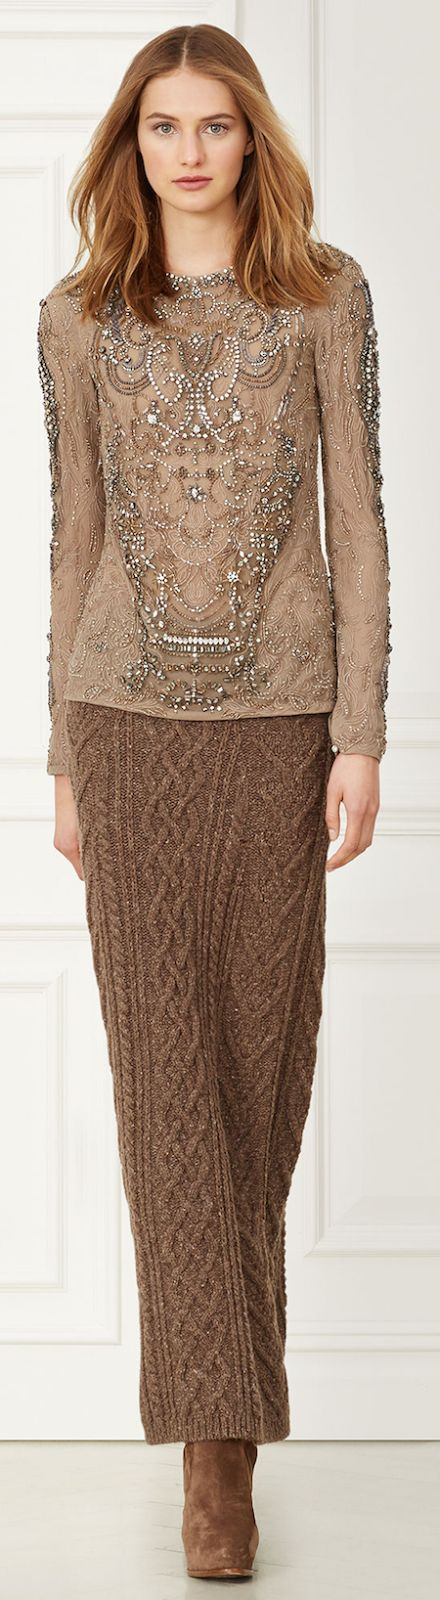 Ralph Lauren beaded top and cable skirt